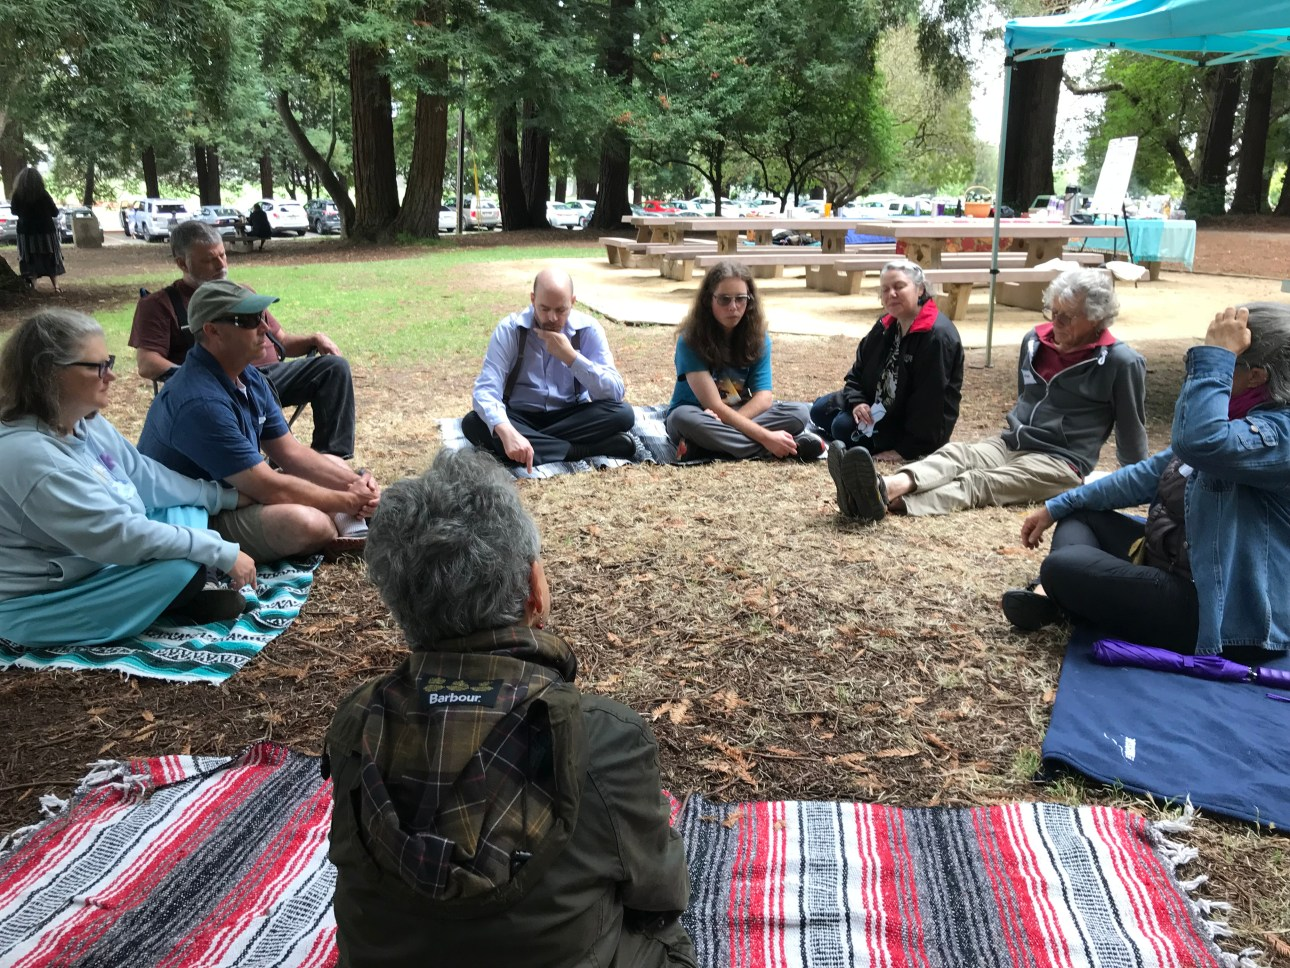 A local group sitting in a circle.